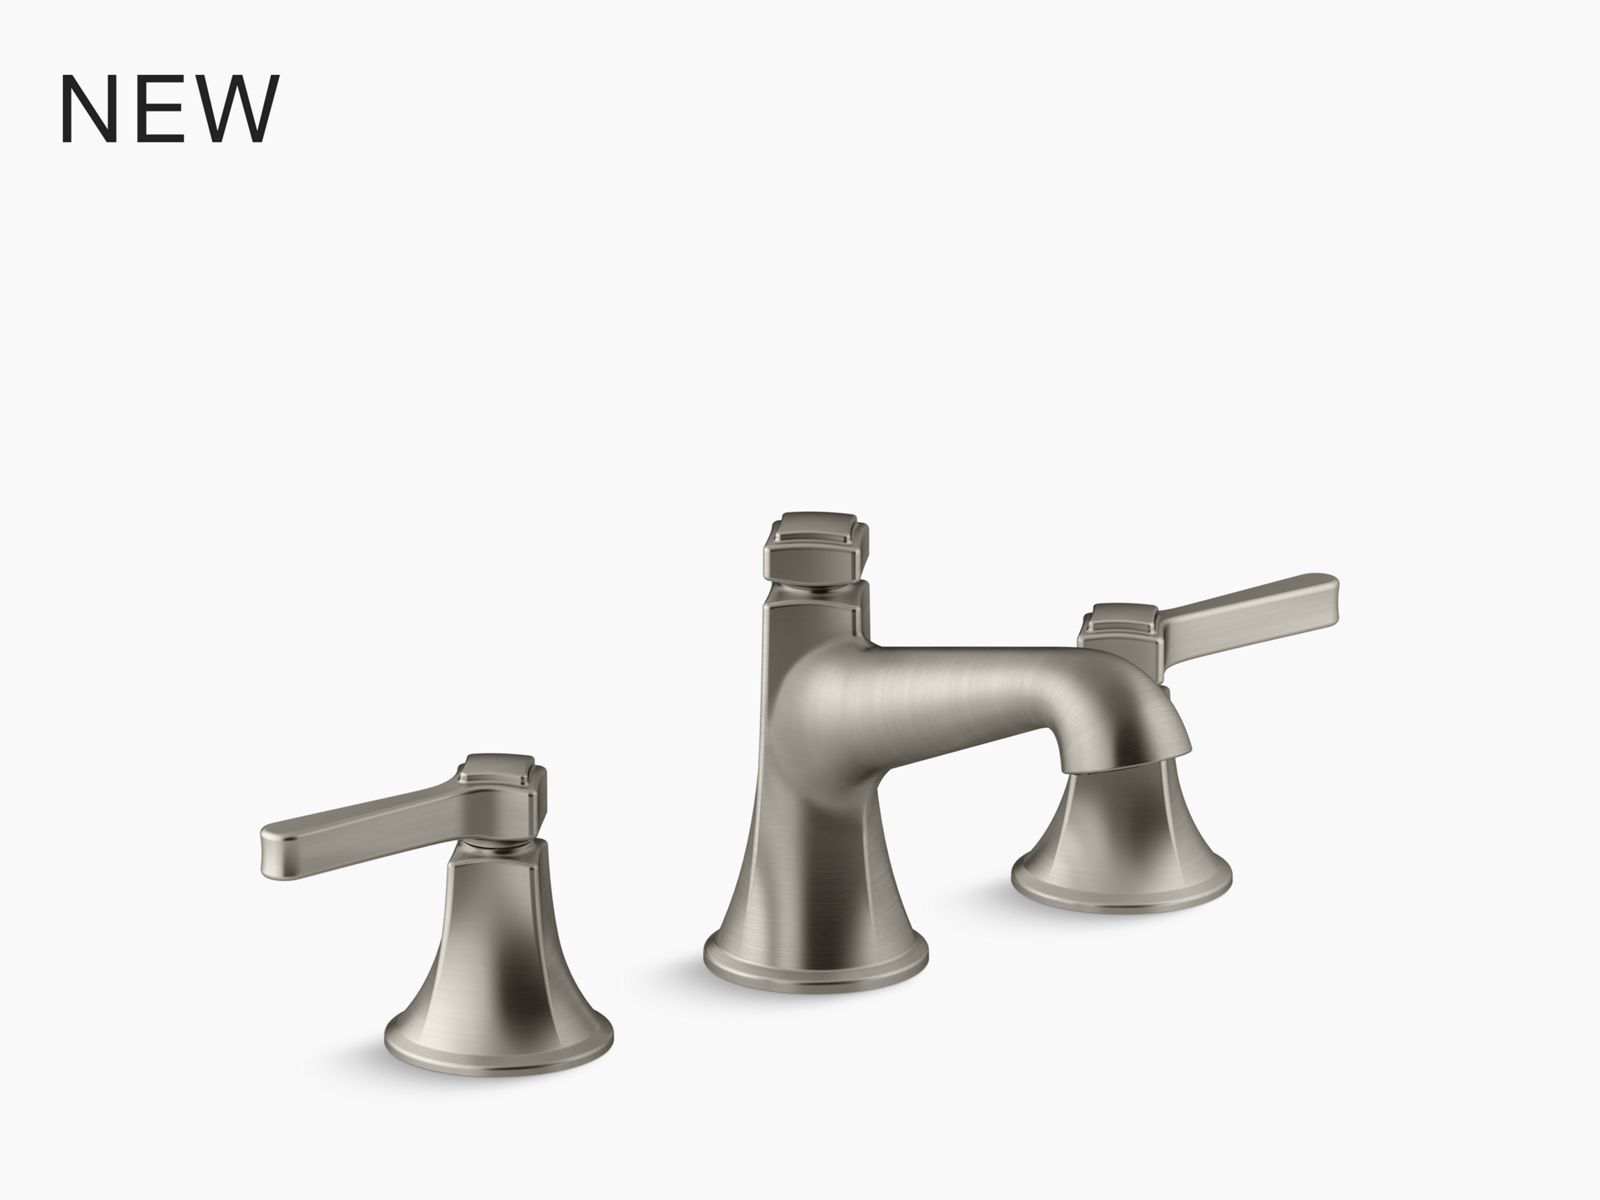 rune pull down kitchen faucet with soap lotion dispenser